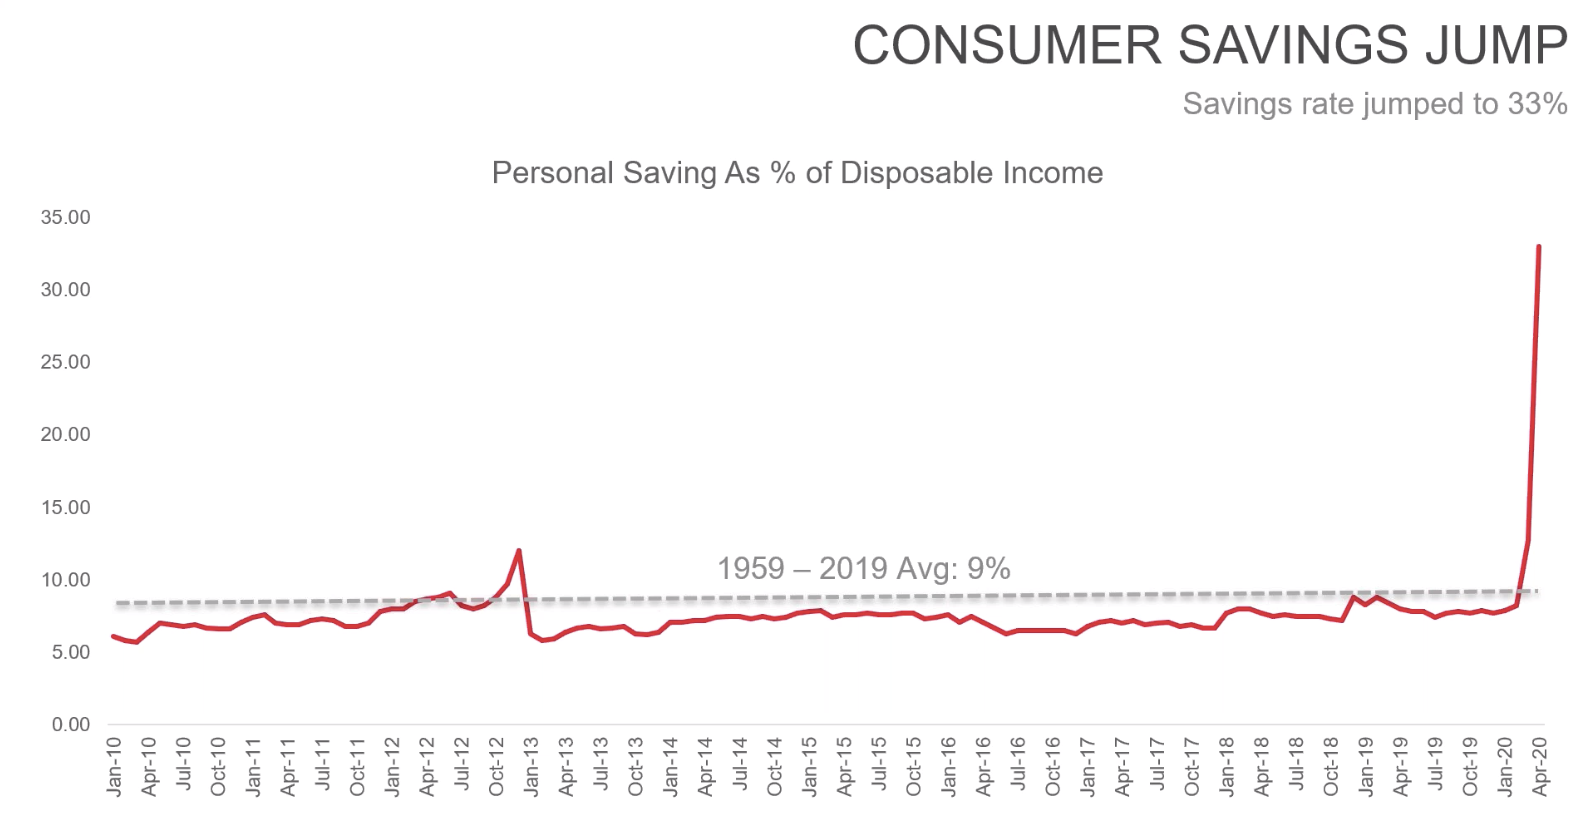 Graph from realtor.com demonstrating rise in consumer savings during COVID-19